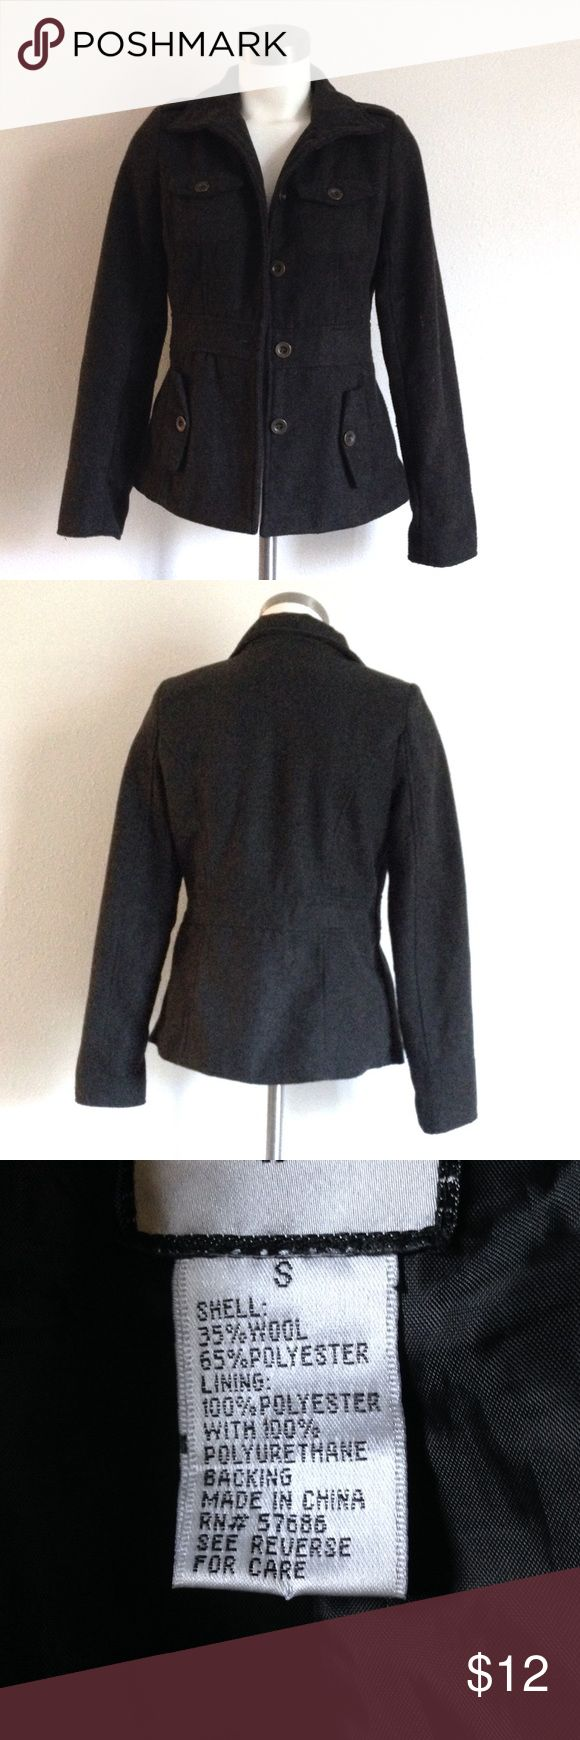 Charcoal Gray Peacoat Fitted wool blend peacoat with kind of a military style. Looks great over a white v neck, skinny jeans, and black ankle boots! Offers welcome! Love this coat but it's a little fitted for me. Would work better for a true small. BP for views. bp Jackets & Coats Pea Coats